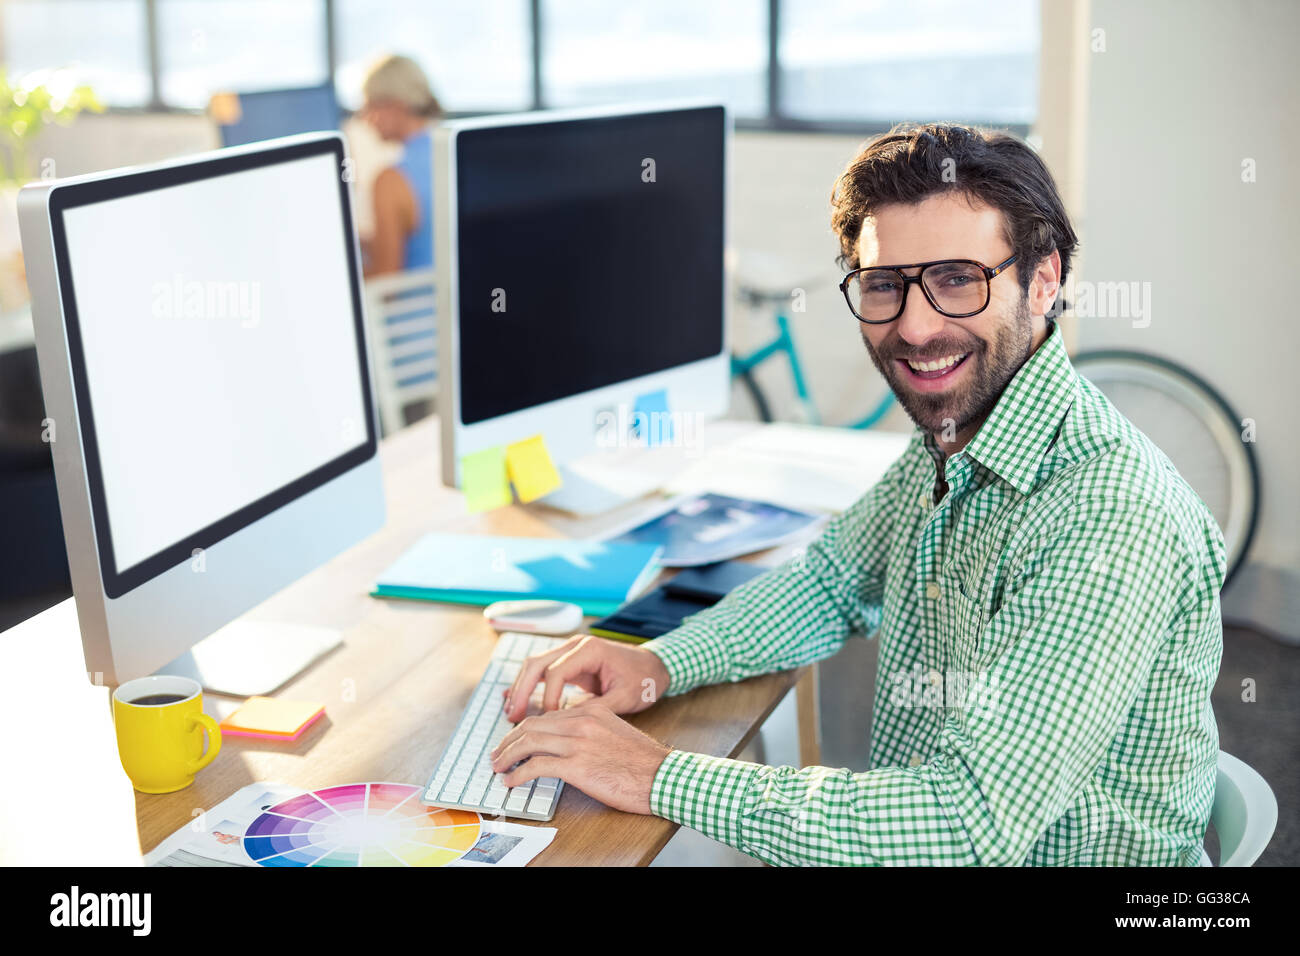 Graphic designer working on computer - Stock Image